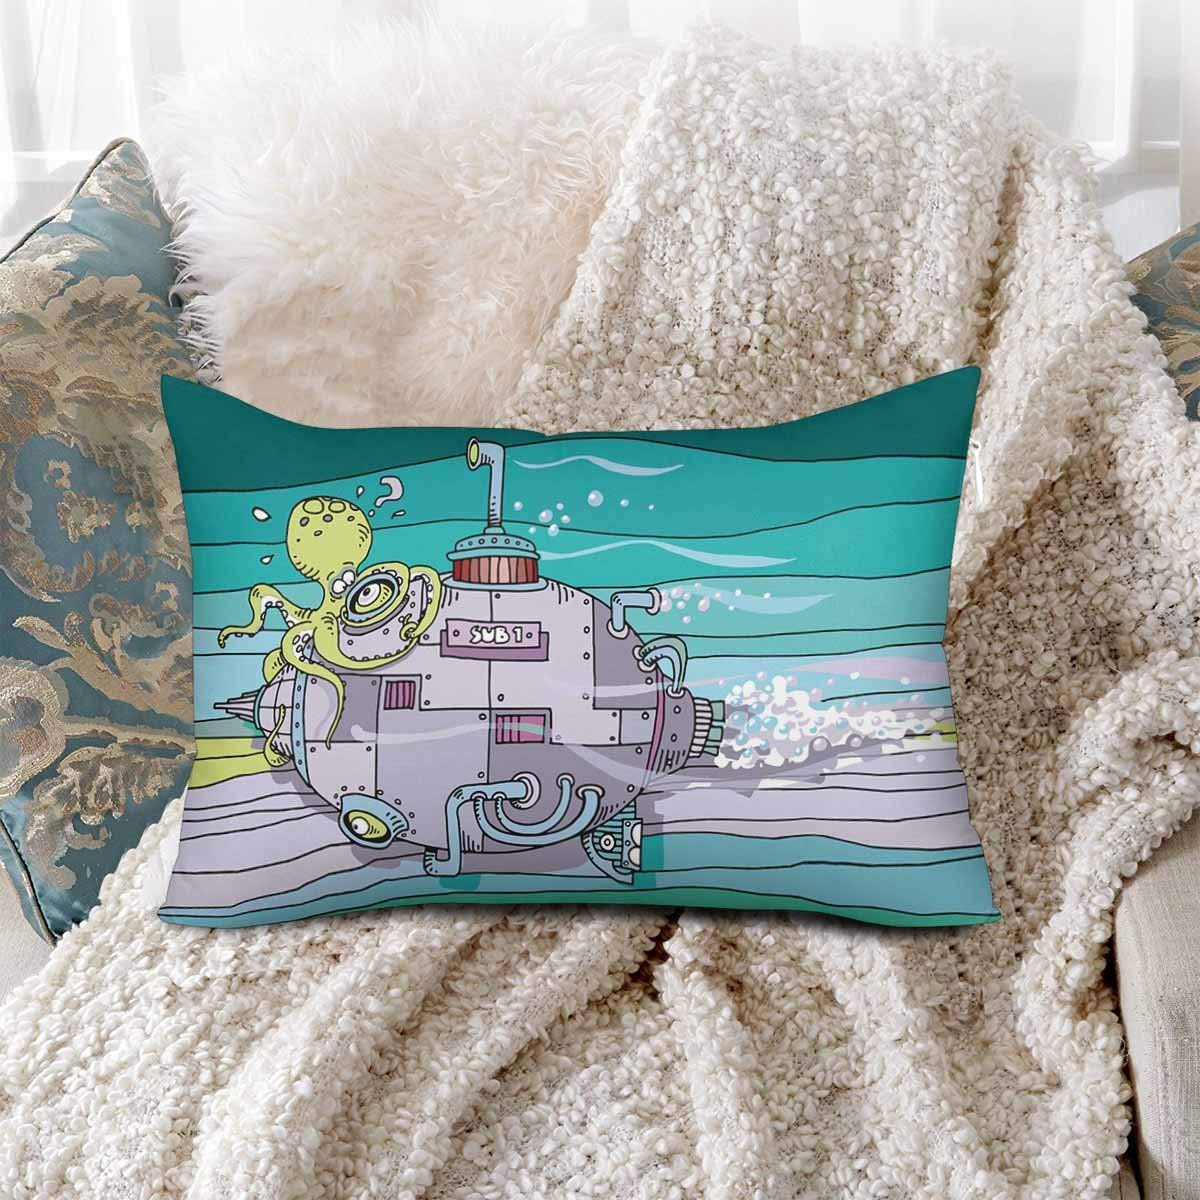 GCKG Cartoon Funny Octopus Squid Submarine Pillow Cases Pillowcase 20x30 inches - image 1 of 4